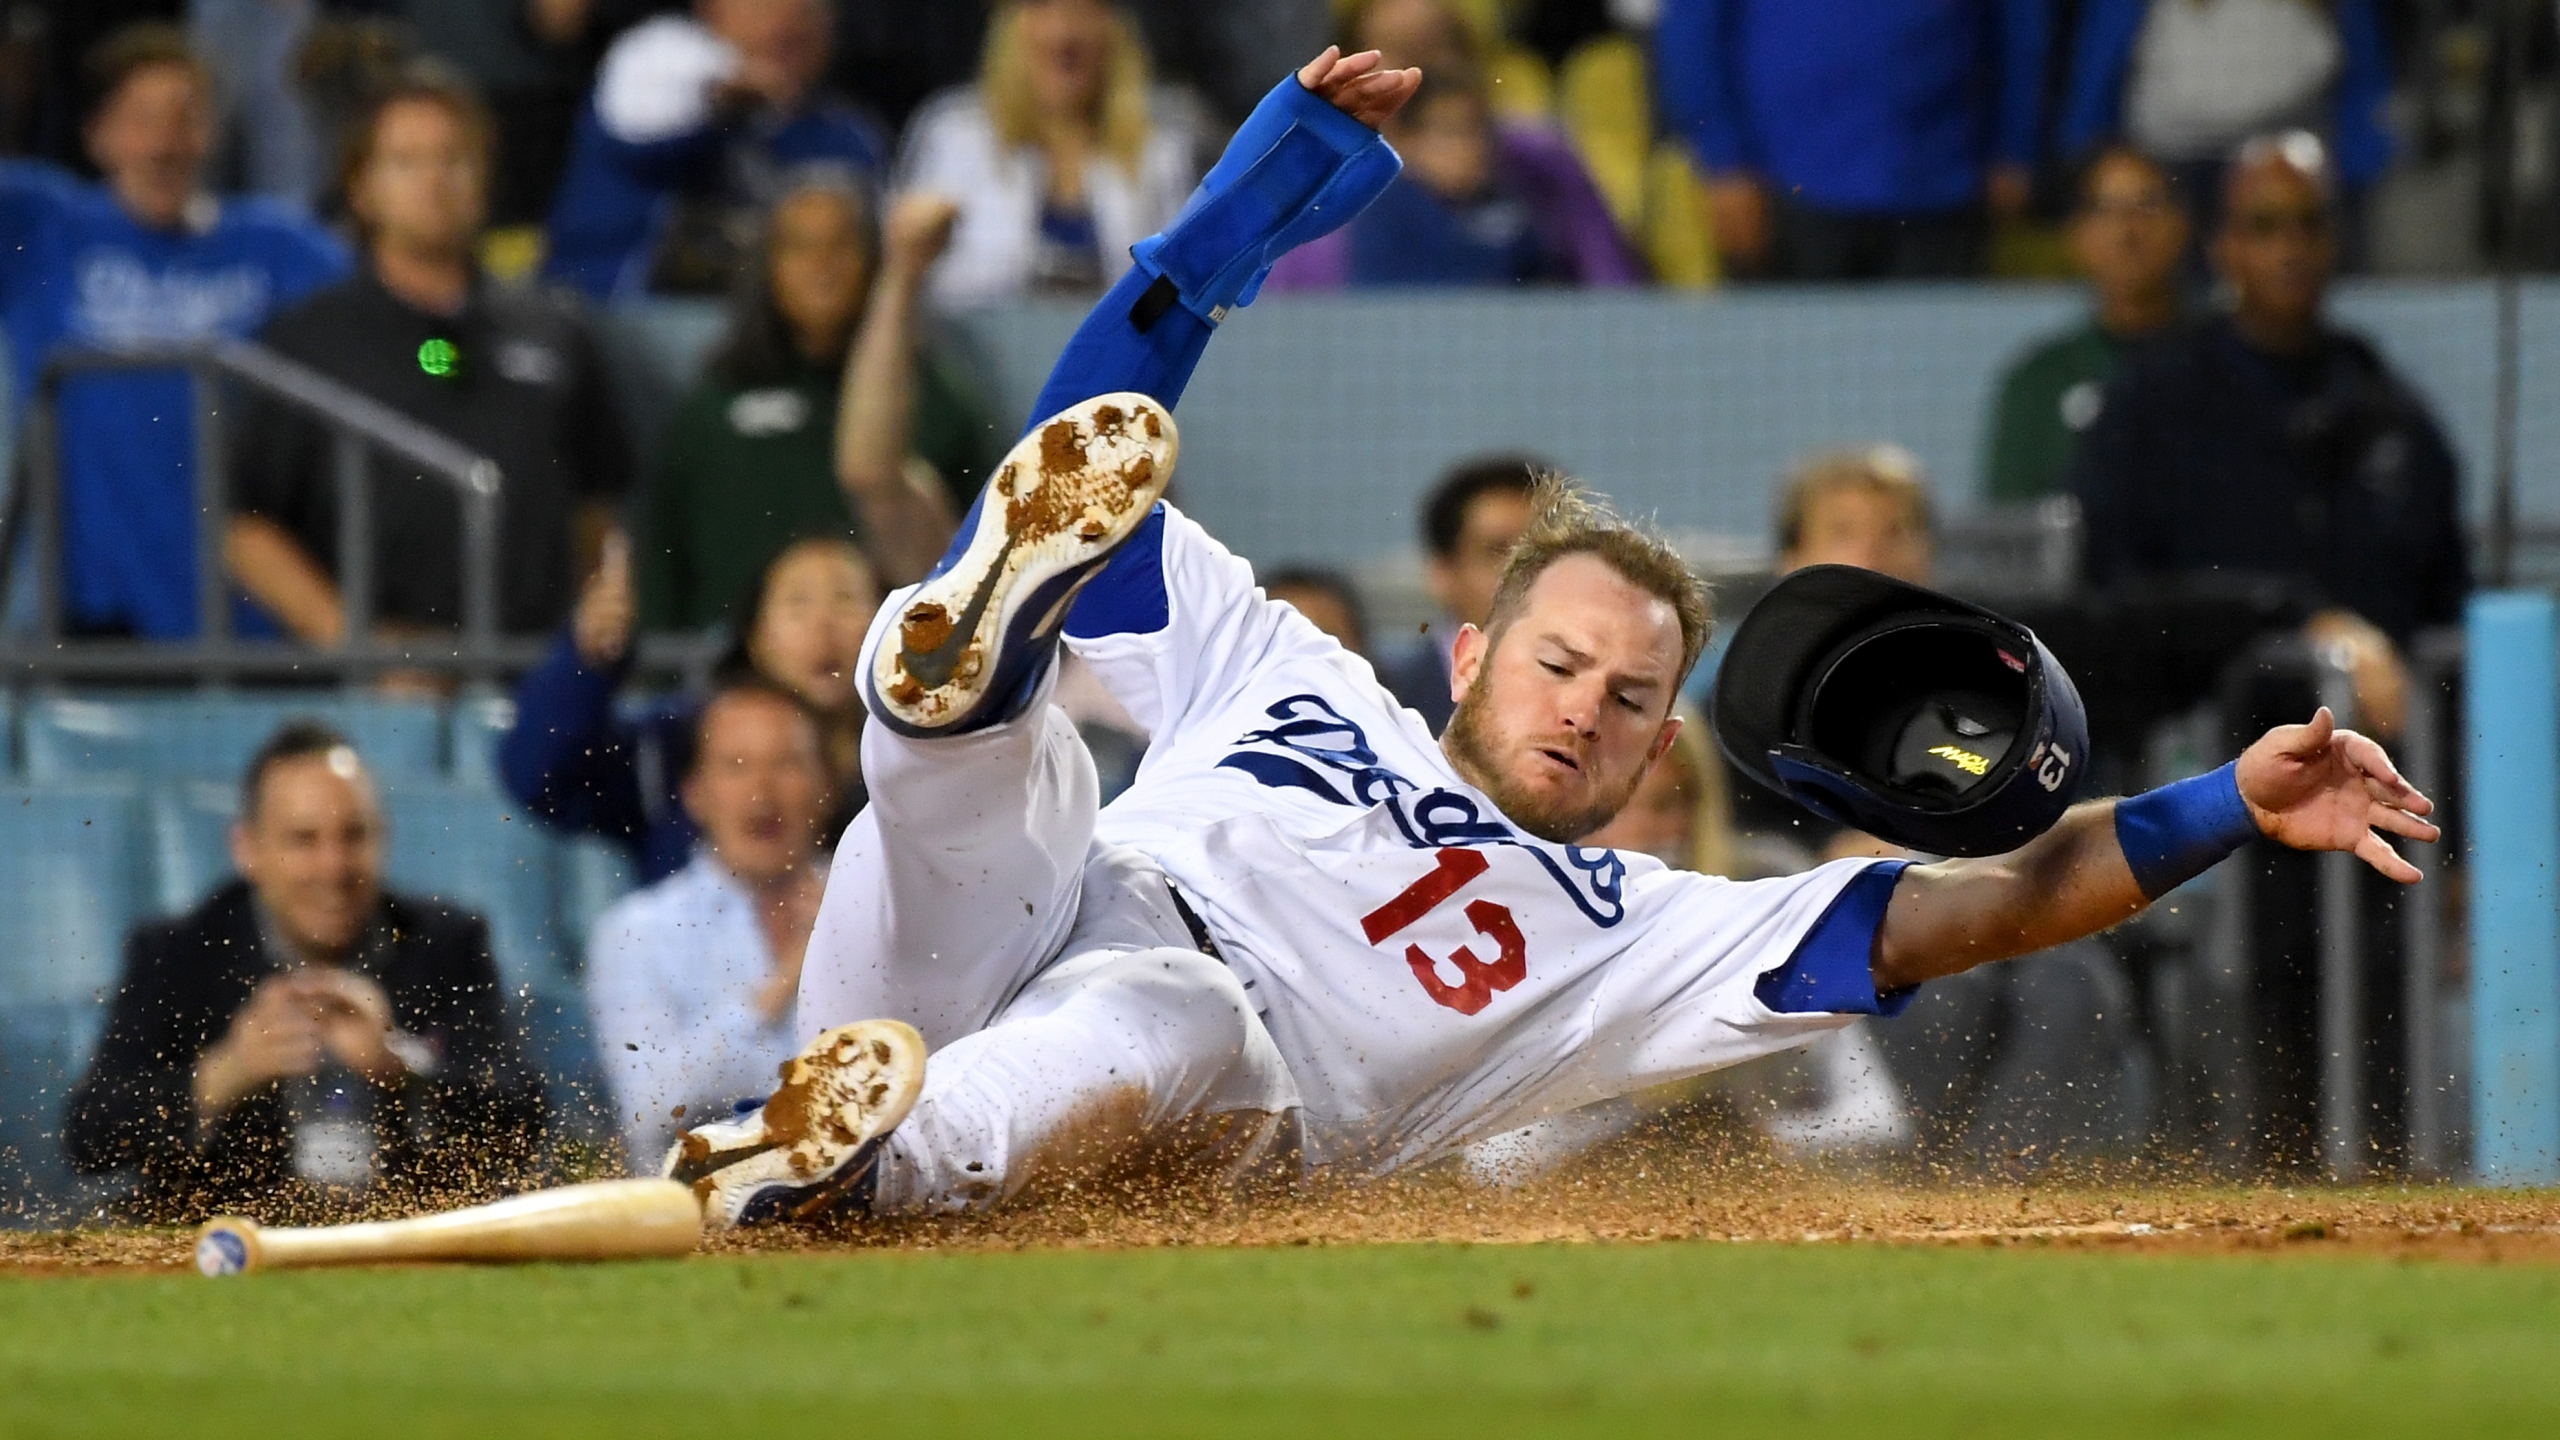 Max Muncy #13 of the Los Angeles Dodgers is safe at home as he gets past Francisco Cervelli #29 of the Pittsburgh Pirates to score a run on a sacrifice fly by Chris Taylor #3 of the Los Angeles Dodgers in the seventh inning of the game at Dodger Stadium on April 27, 2019 in Los Angeles, California. (Credit: Jayne Kamin-Oncea/Getty Images)